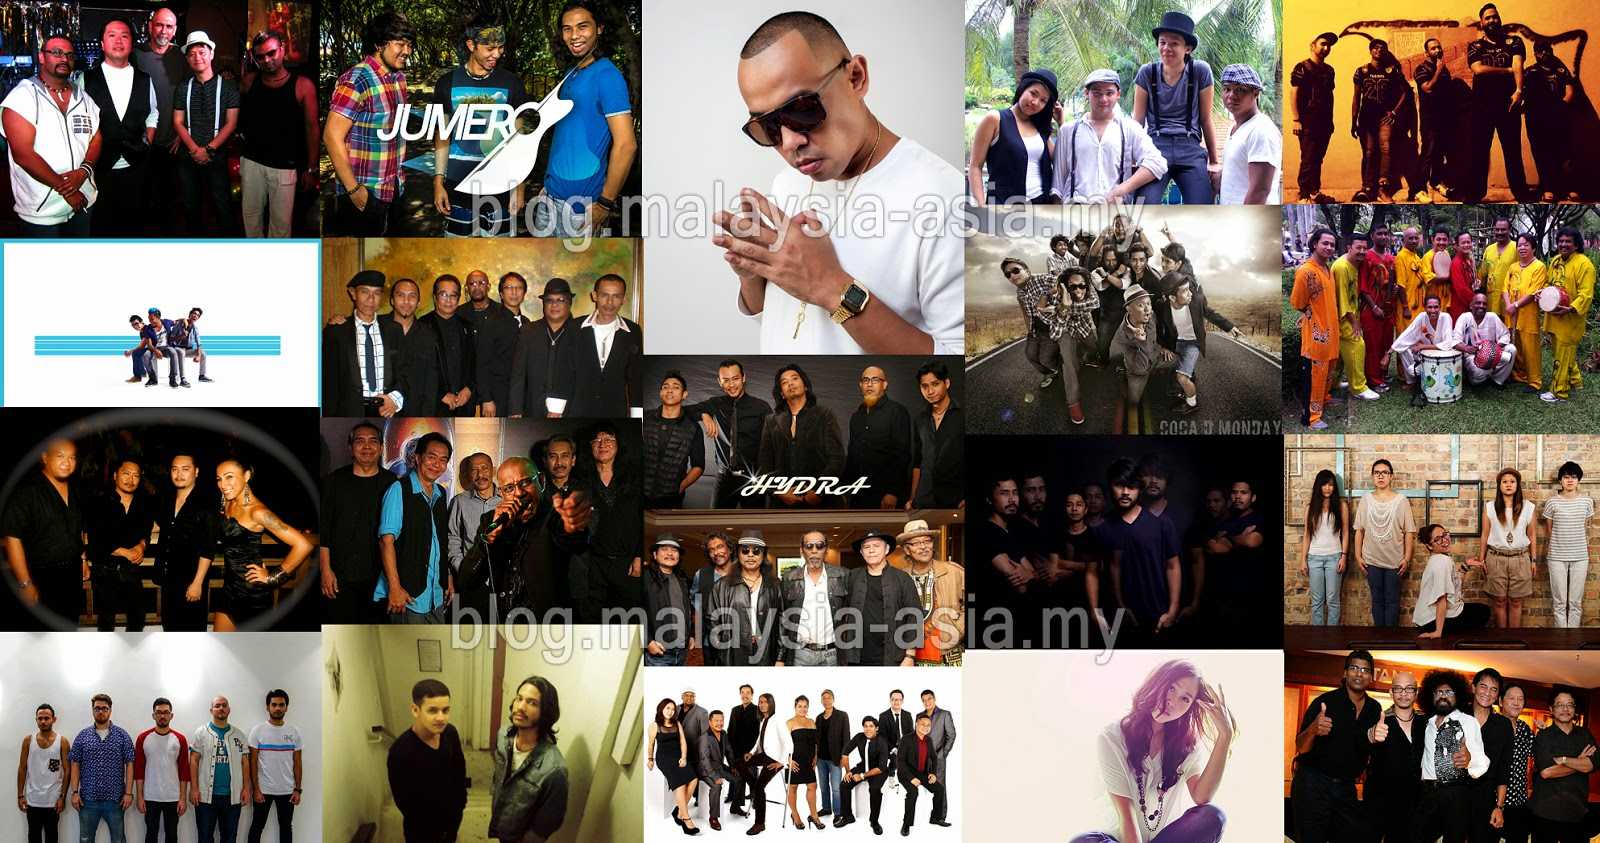 MyMusicFest 2015 Bands and Artist